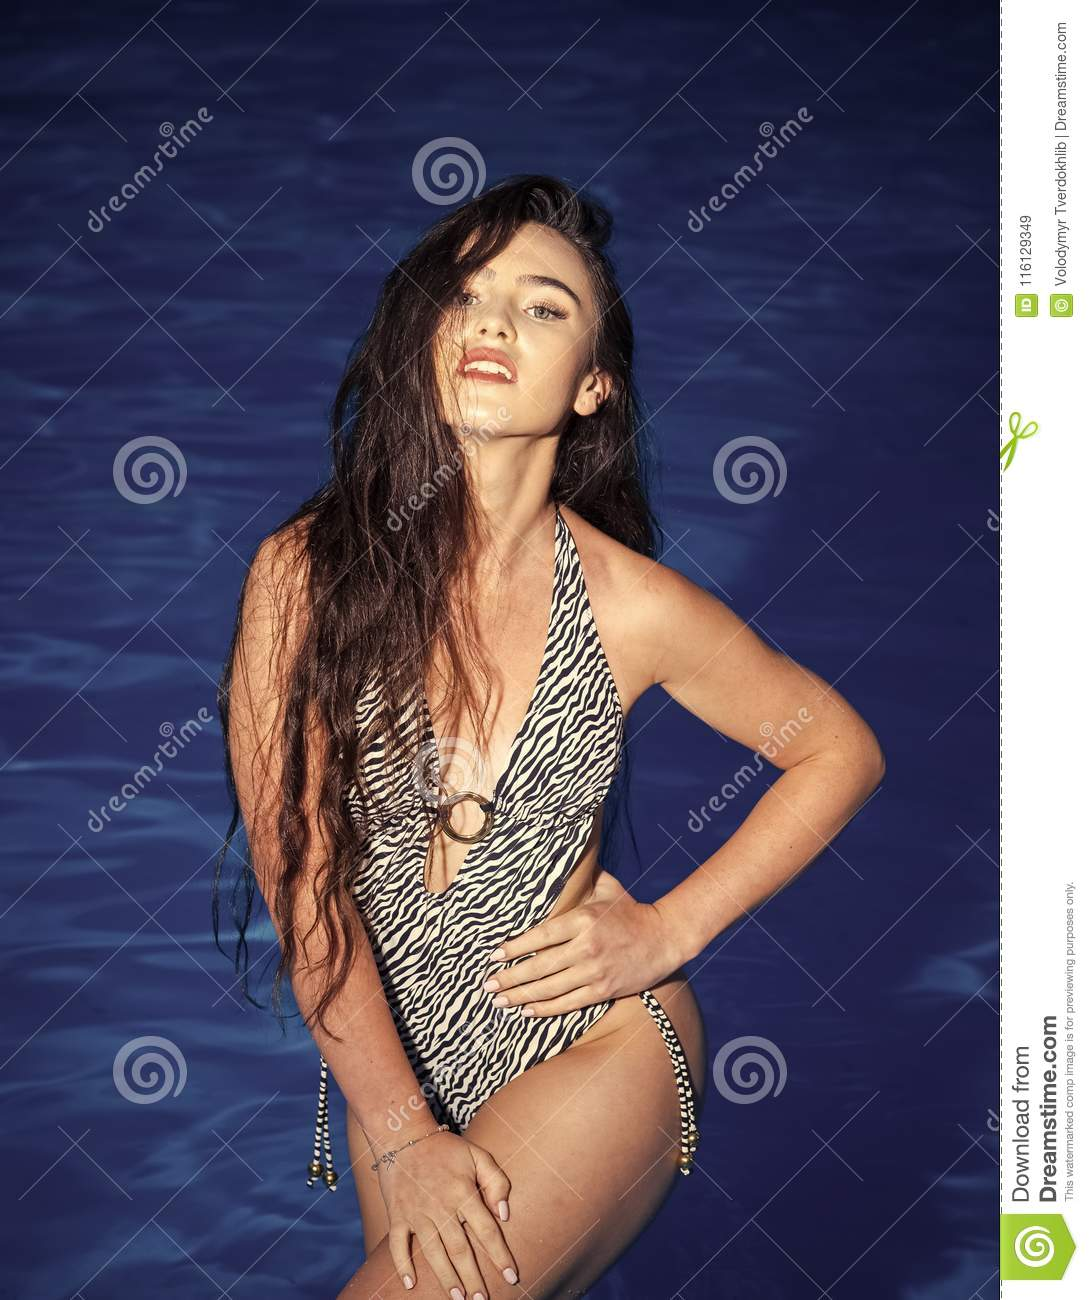 Fashion and beauty of woman with natural makeup and hair. woman on sea in swimsuit. Maldives or Miami beach, diet. Summer vacation and travel to ocean, ...